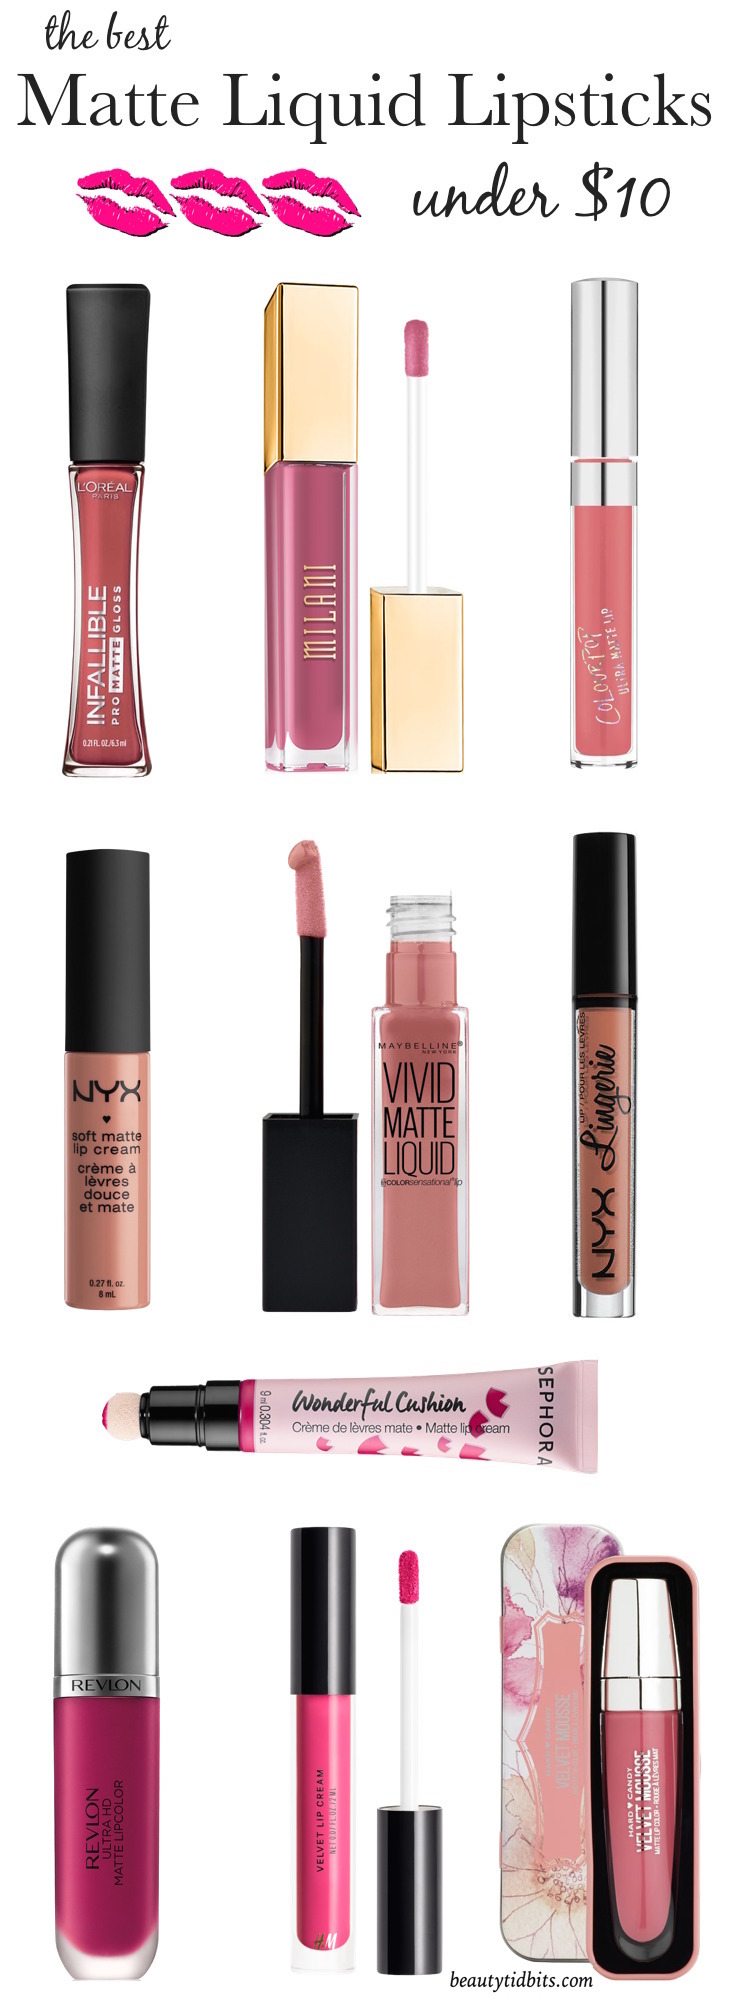 Best Matte Liquid Lipsticks (under $  10) that are long-lasting and won't dry your lips! You NEED these! Click through to get the Ultimate list of drugstore liquid lipsticks you need right now!